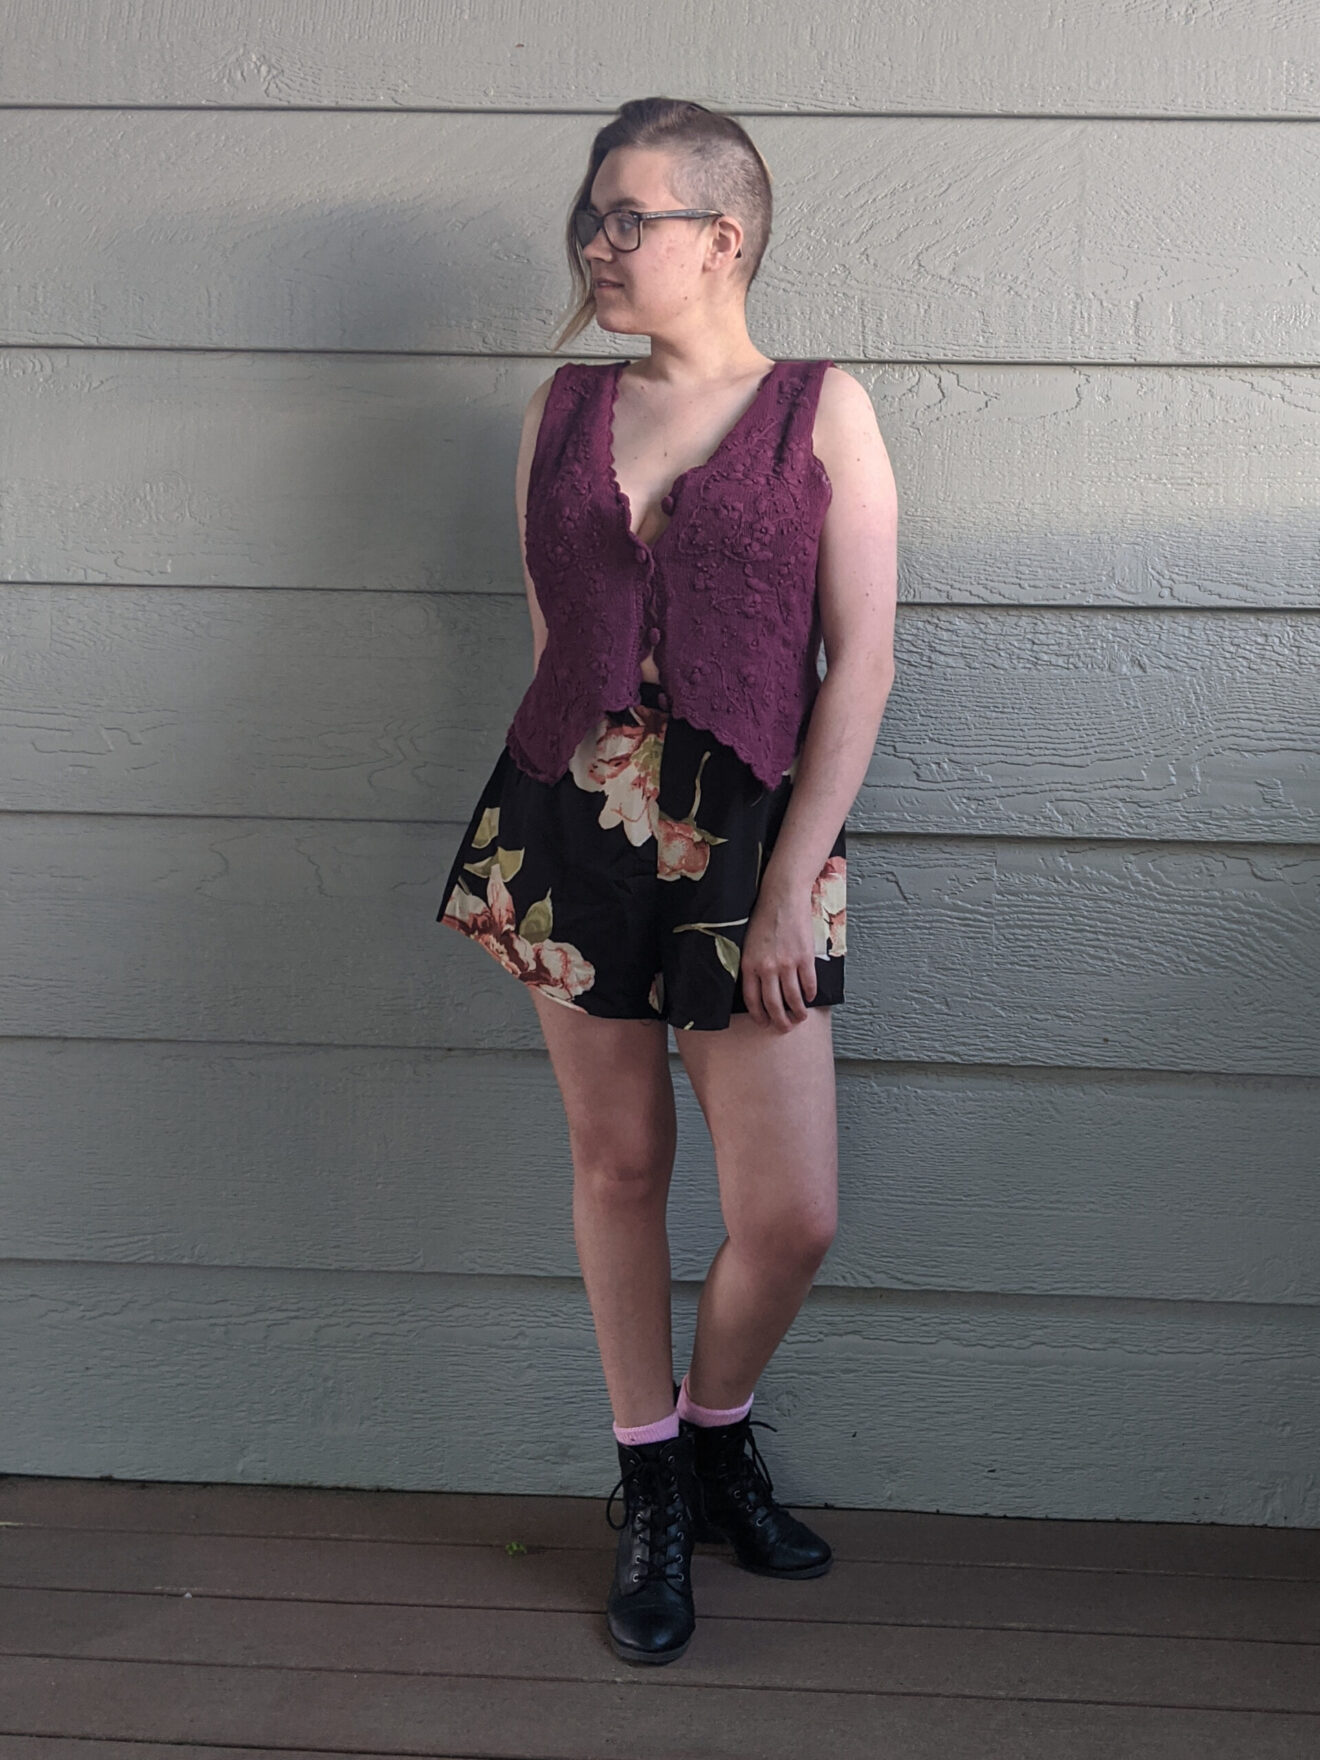 It Isnt Love If Its Selfish Alissa Ackerman Story Behind The Cloth fashion blog post Summer Mori Kei gothic bohemian witchy romantic outfit Heartbreak breakup depression love loss 18 scaled